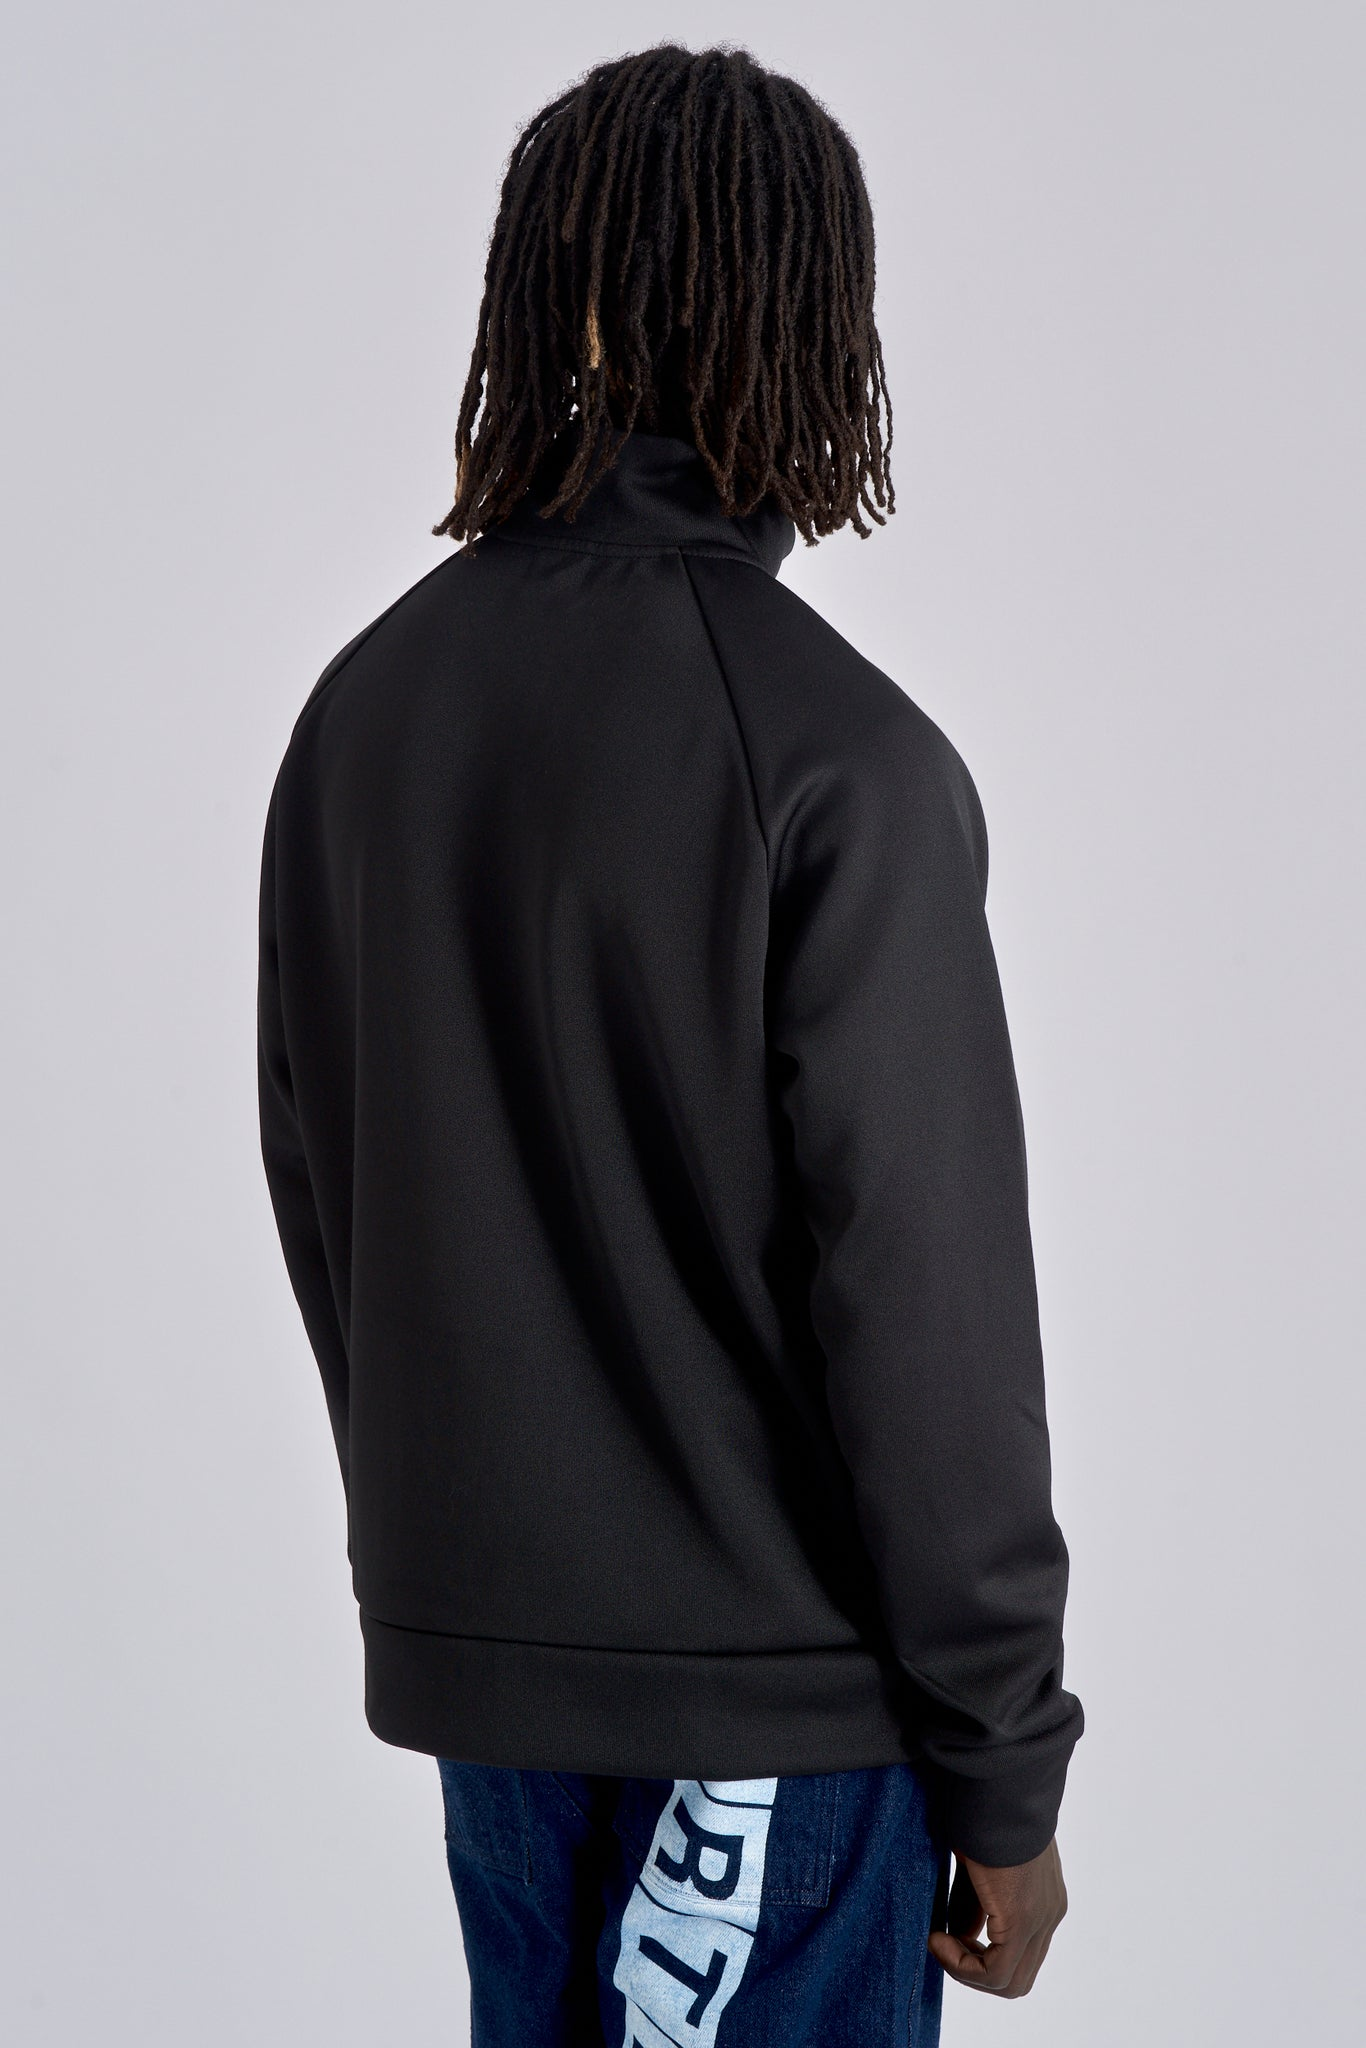 Jasper Black Sweater - Arte Antwerp